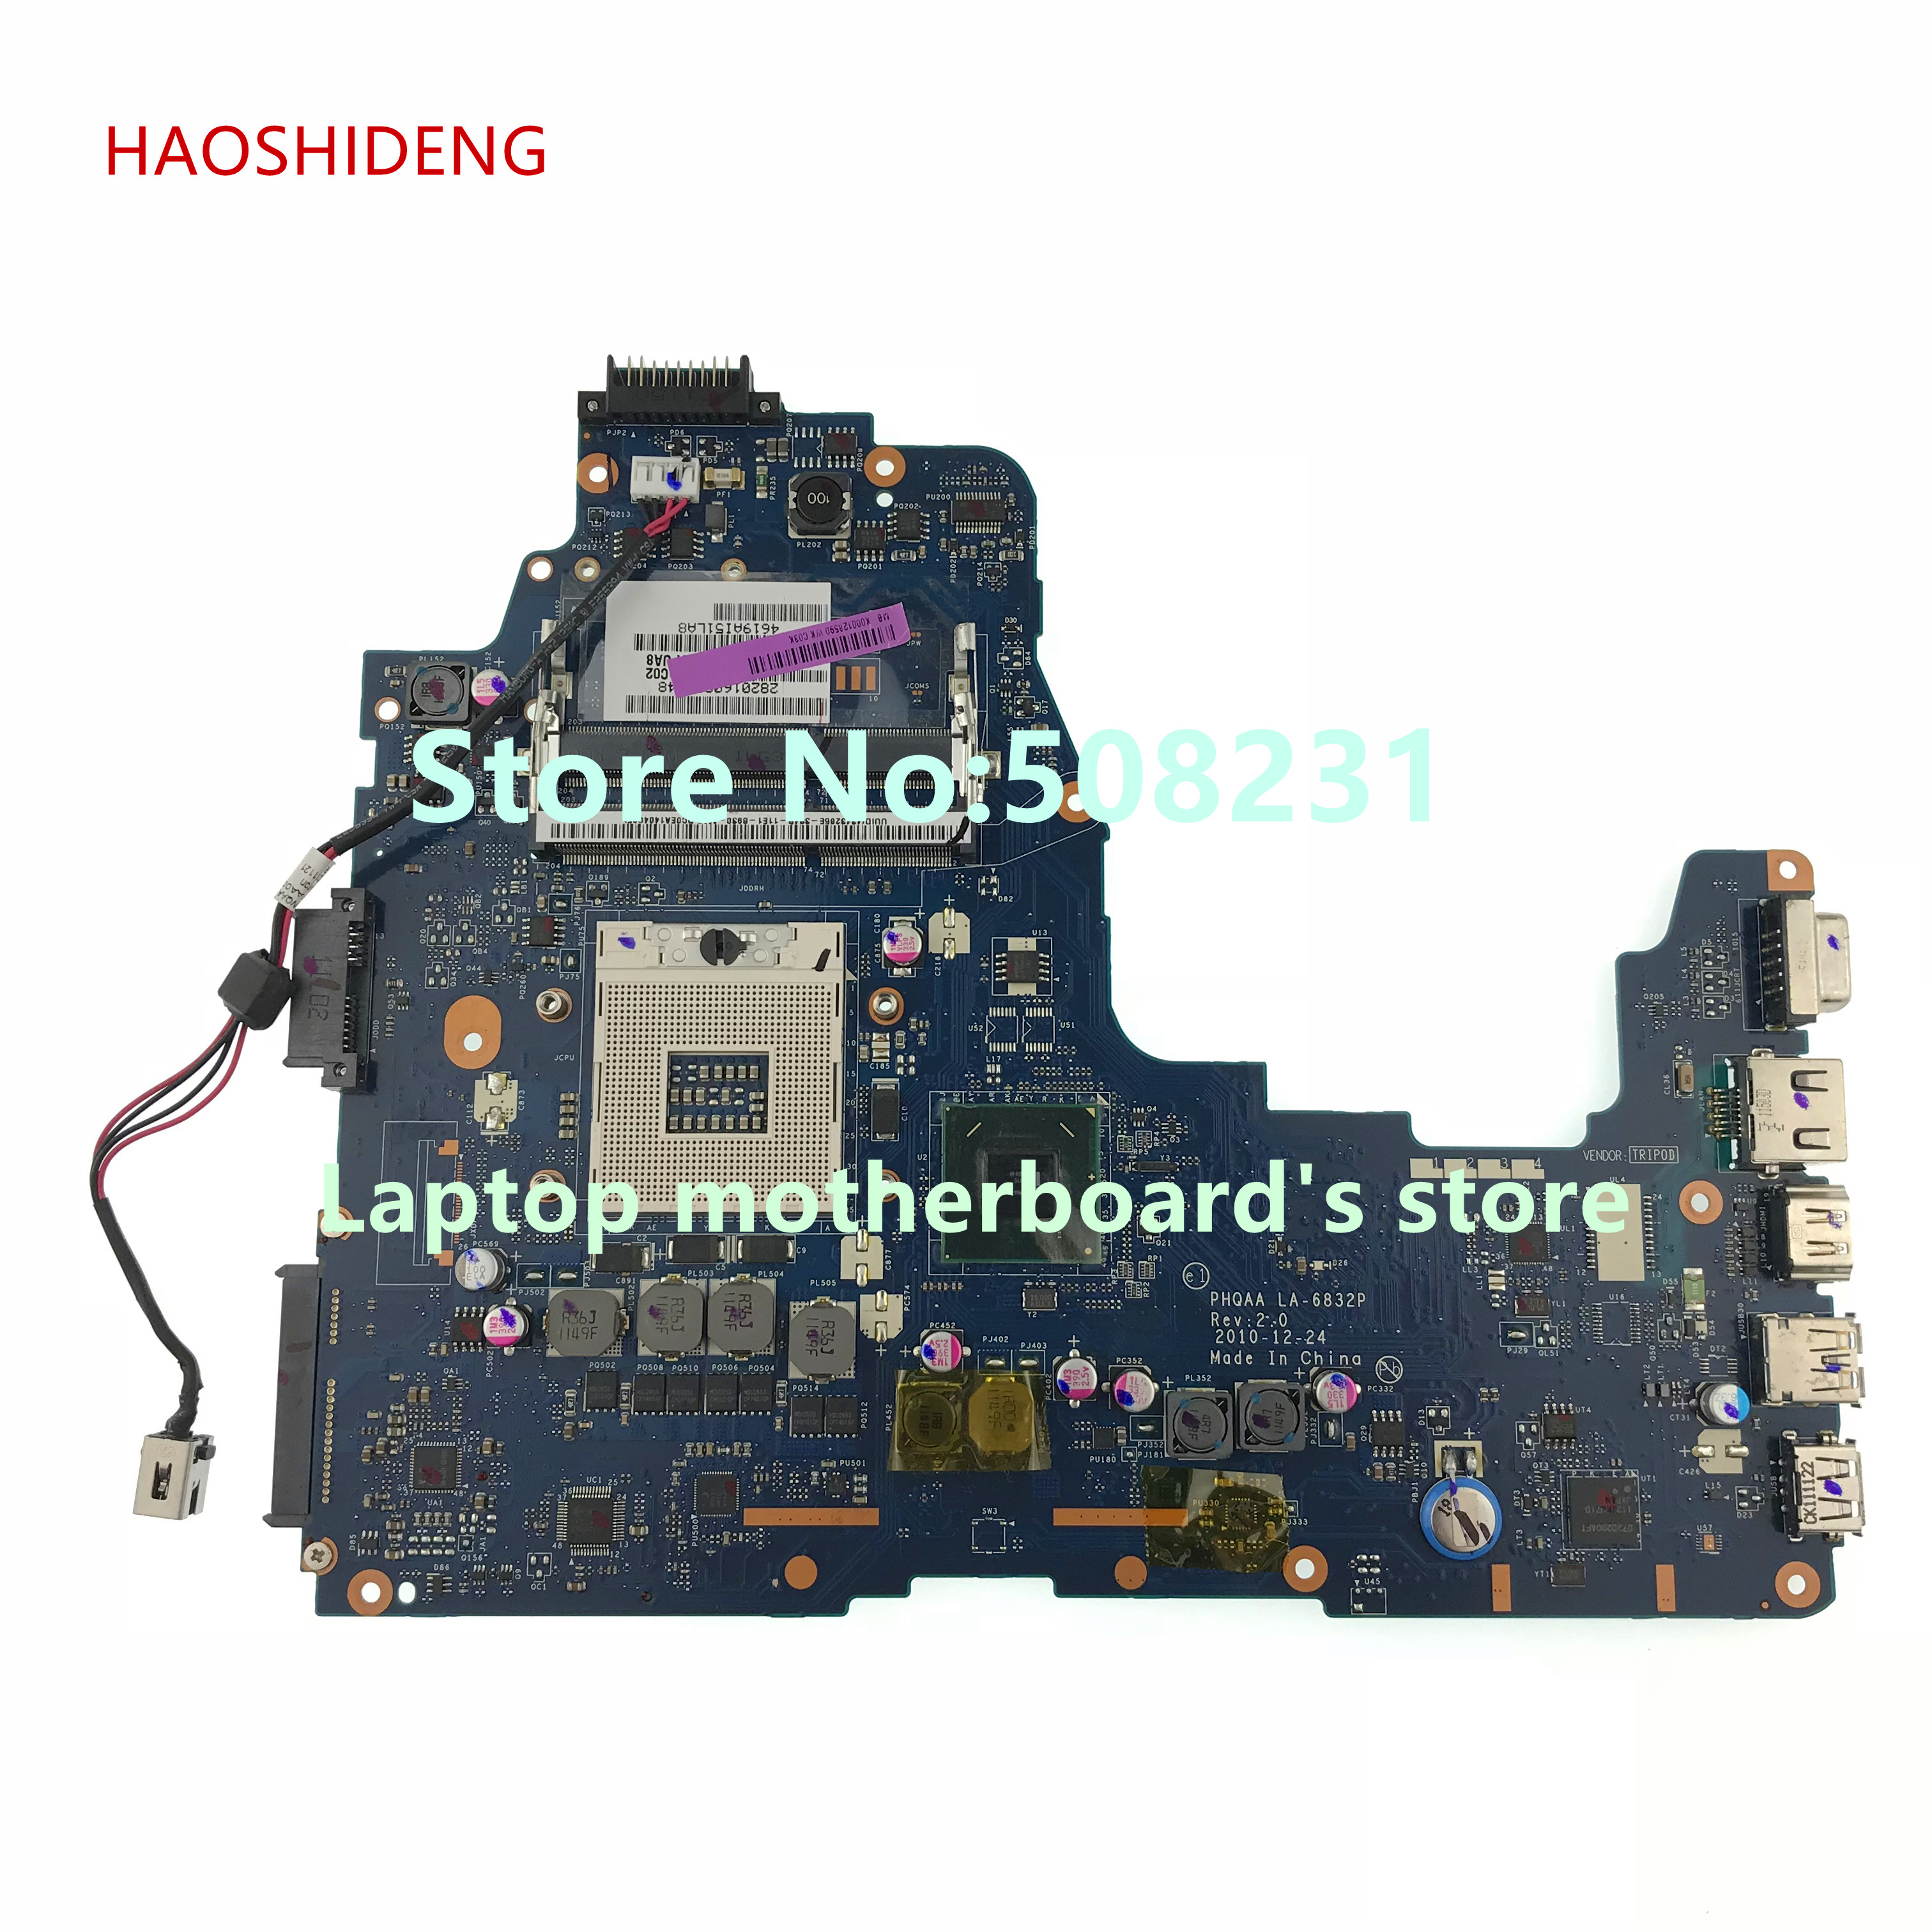 HAOSHIDENG K000128590 LA-6832P Mainrboard For Toshiba satellite P750 P755 A665 A660 laptop motherboard fully Tested k000104250 motherboard for toshiba satellite a660 a665 la 6061p nwqaa tested good